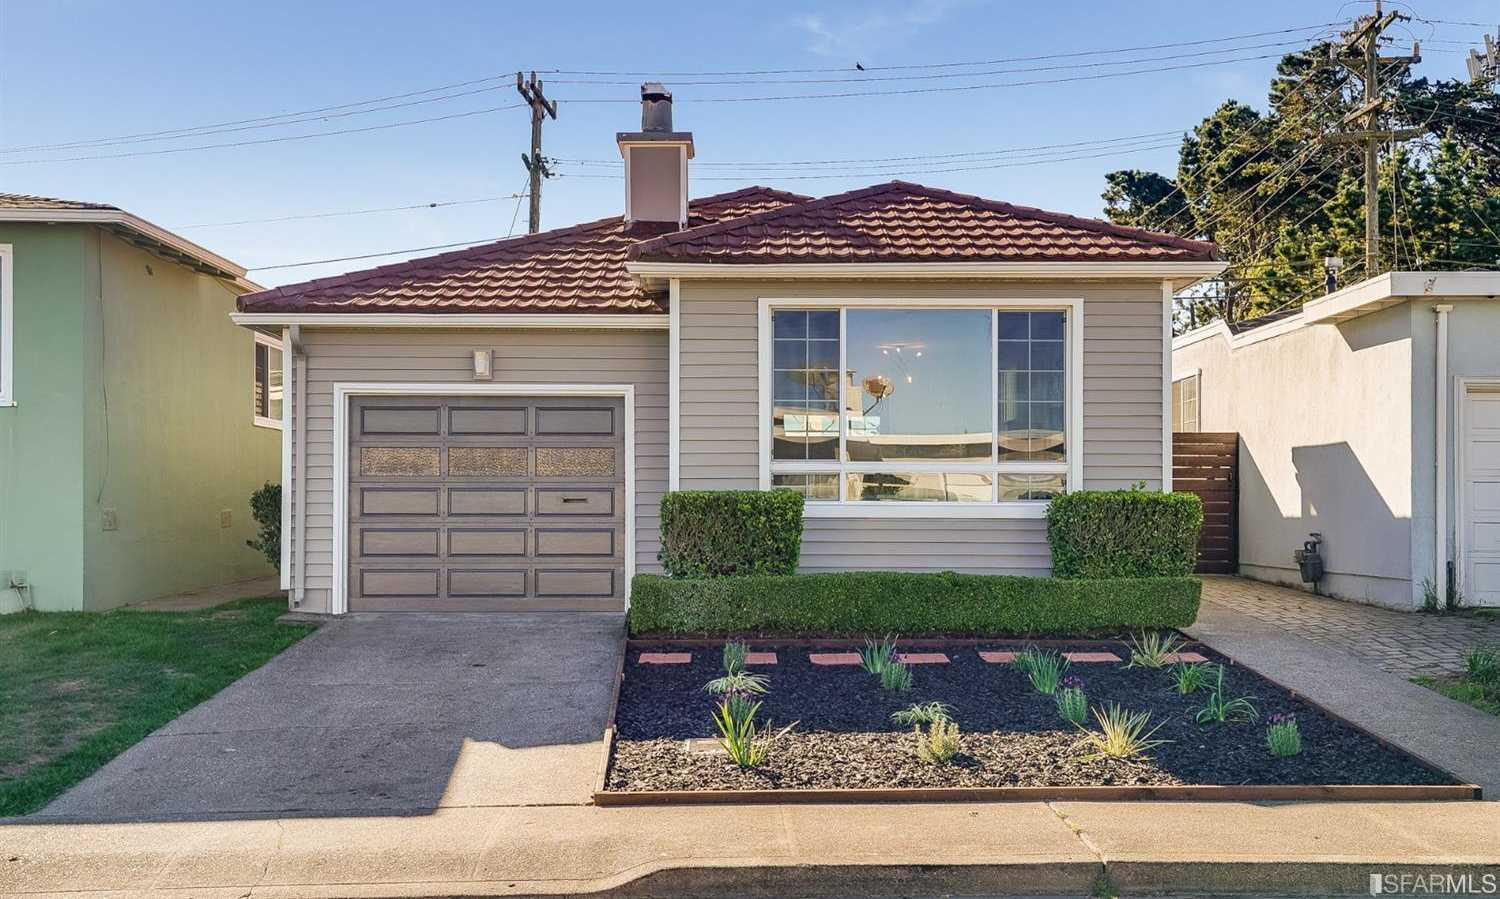 $899,000 - 3Br/2Ba -  for Sale in Daly City